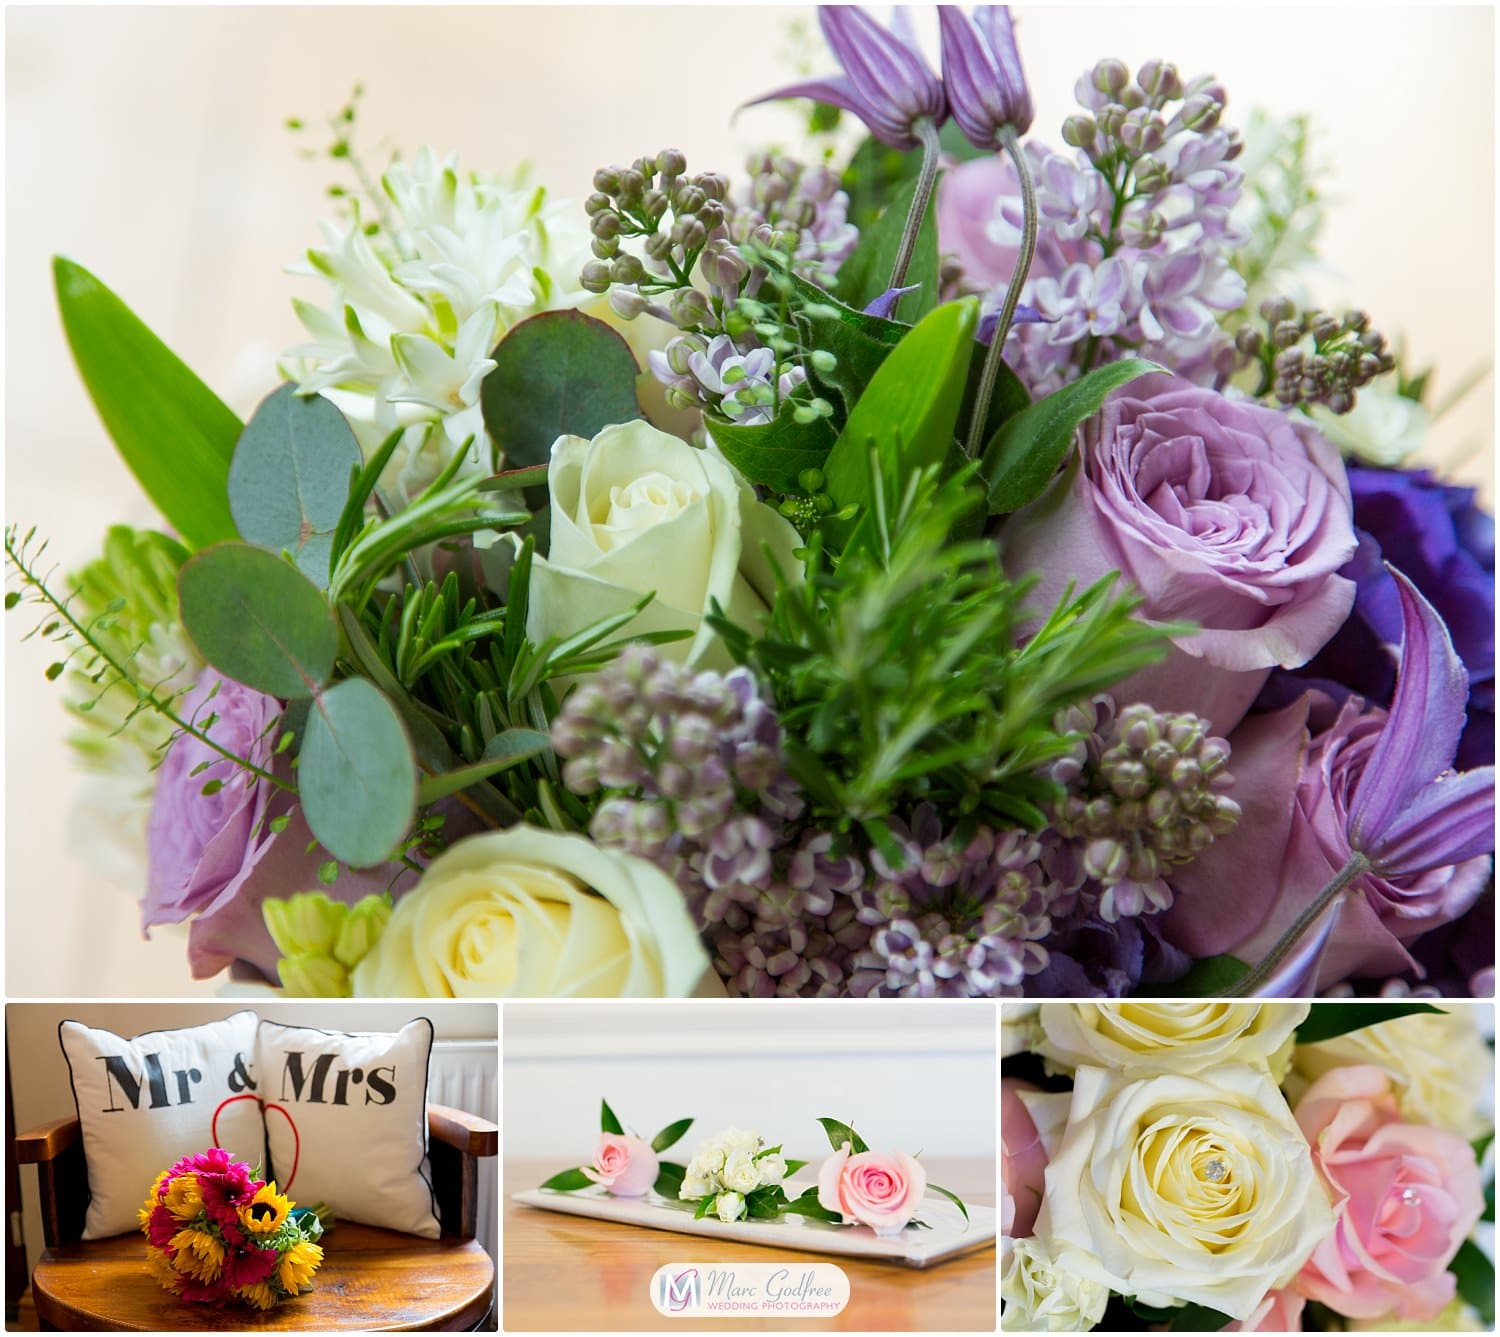 Post wedding flower ideas-nursing home